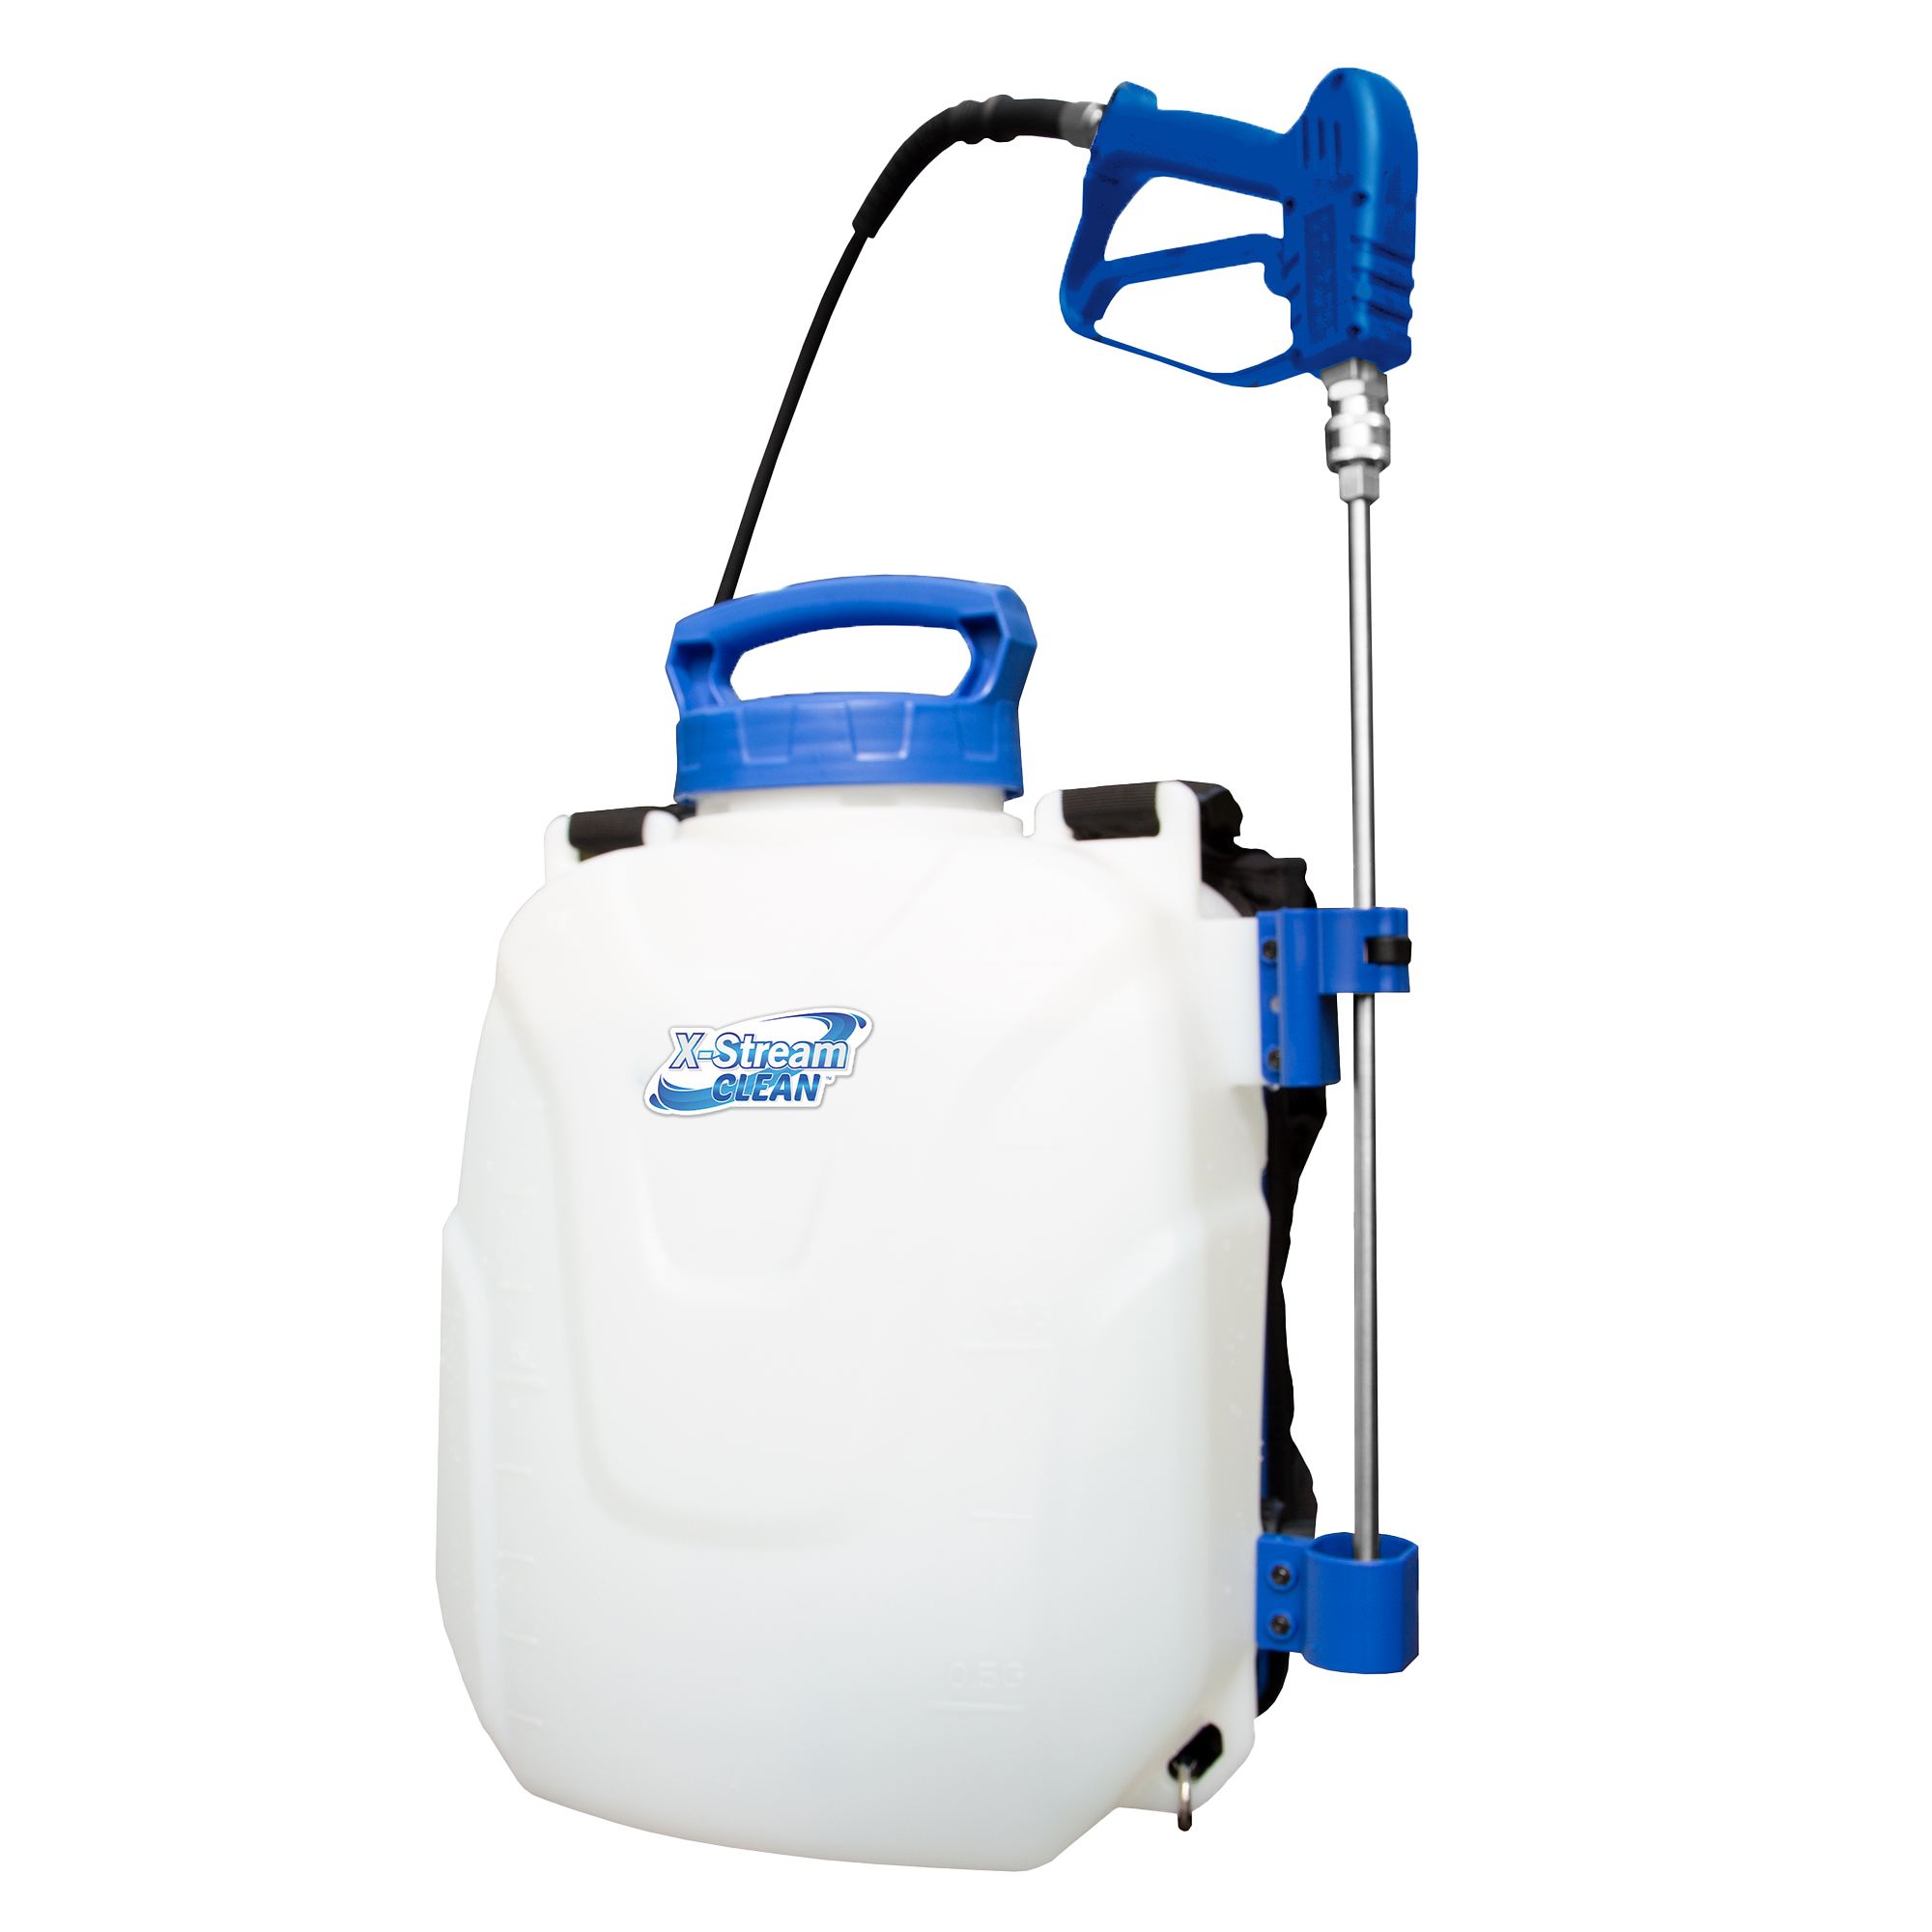 X-Stream Clean® MicroBurs™ Cleaning and Sanitation Lithium-Ion battery powered sprayer